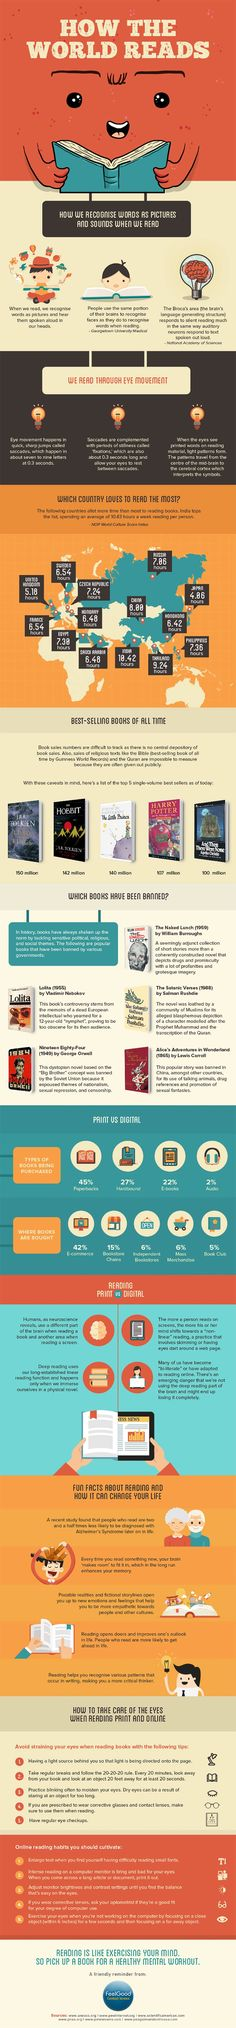 A bunch of interesting facts about reading in one handy infographic